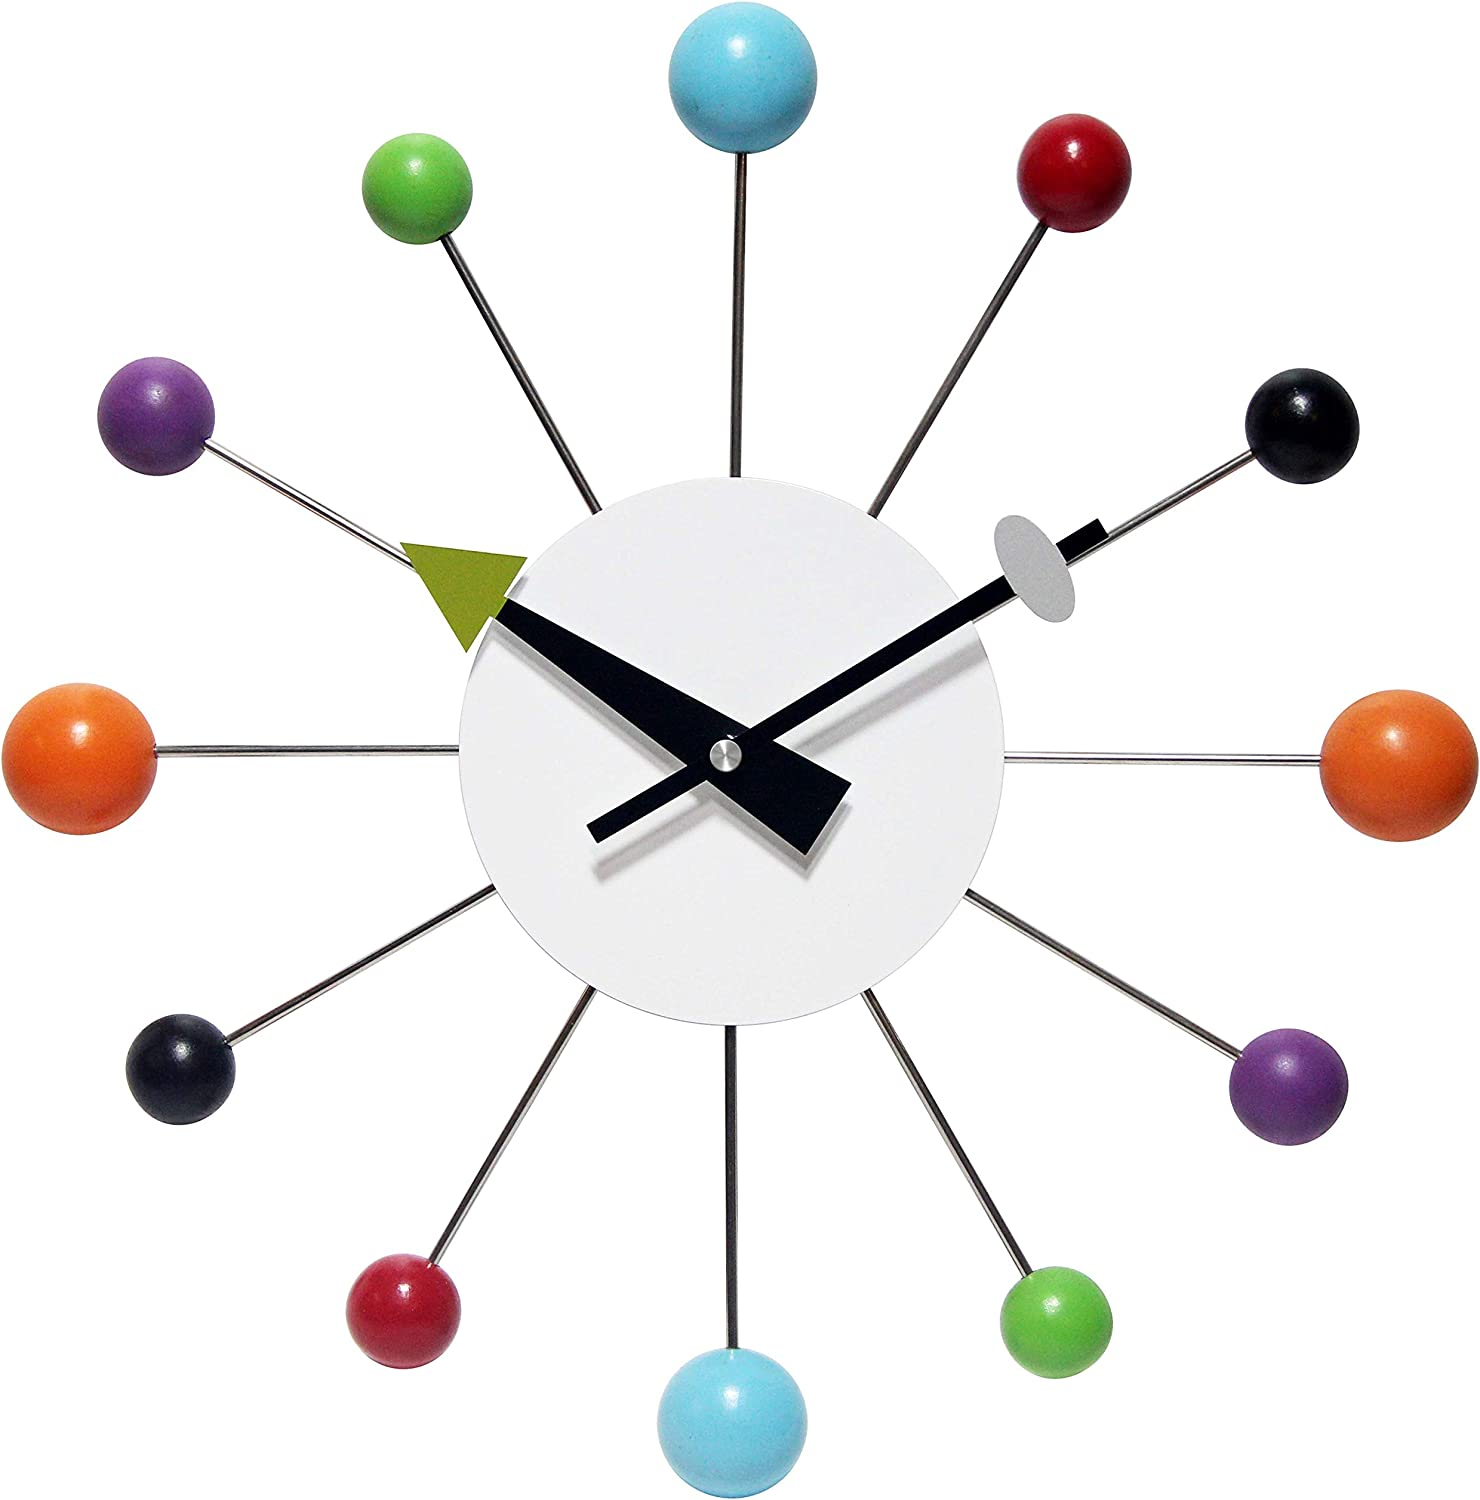 Infinity Instruments Orb Spoke Midcentury Modern 15 inch Retro Starburst Ball Wall Clock Quiet Quartz Movement Mid Century Decorative, Multicolor